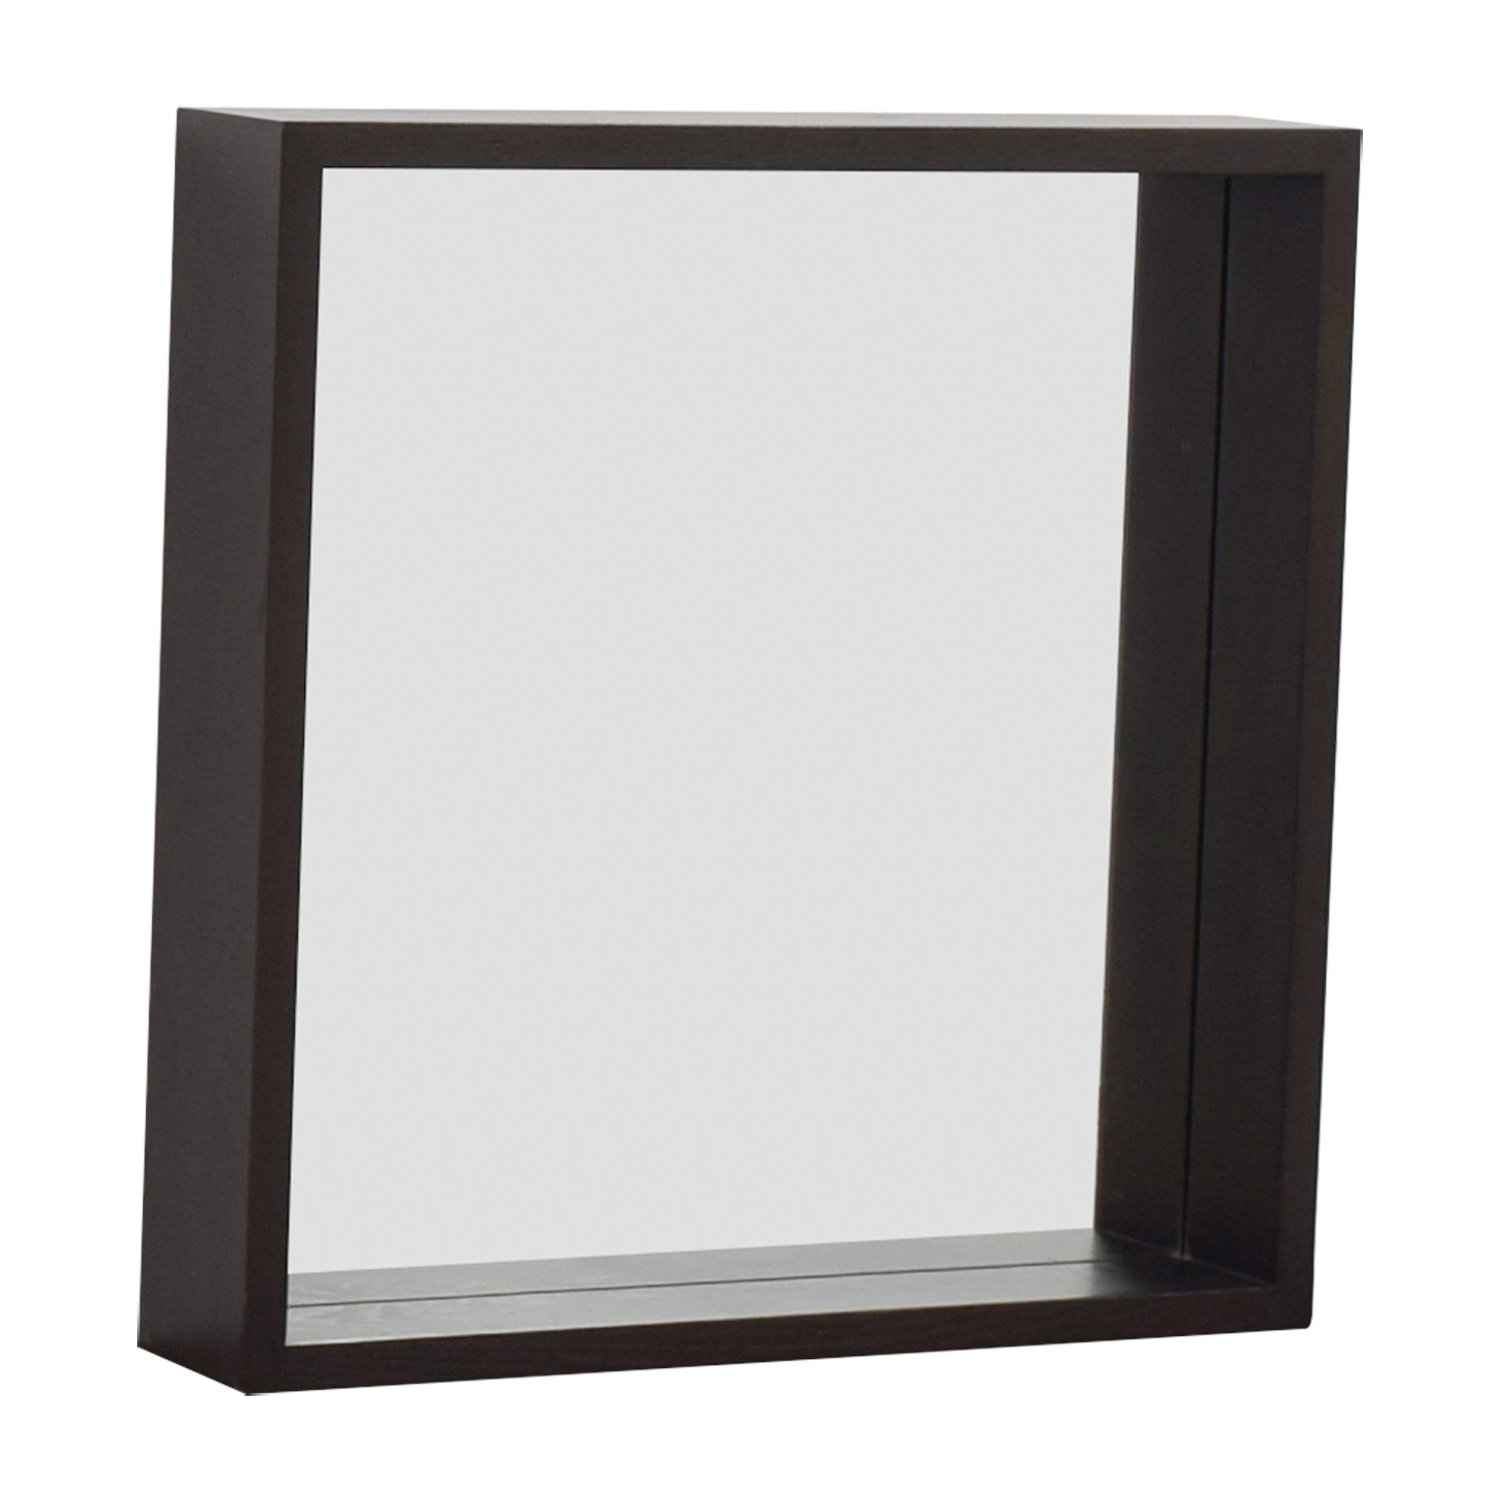 West Elm West Elm Wooden Framed Mirror Mahogany / Glass